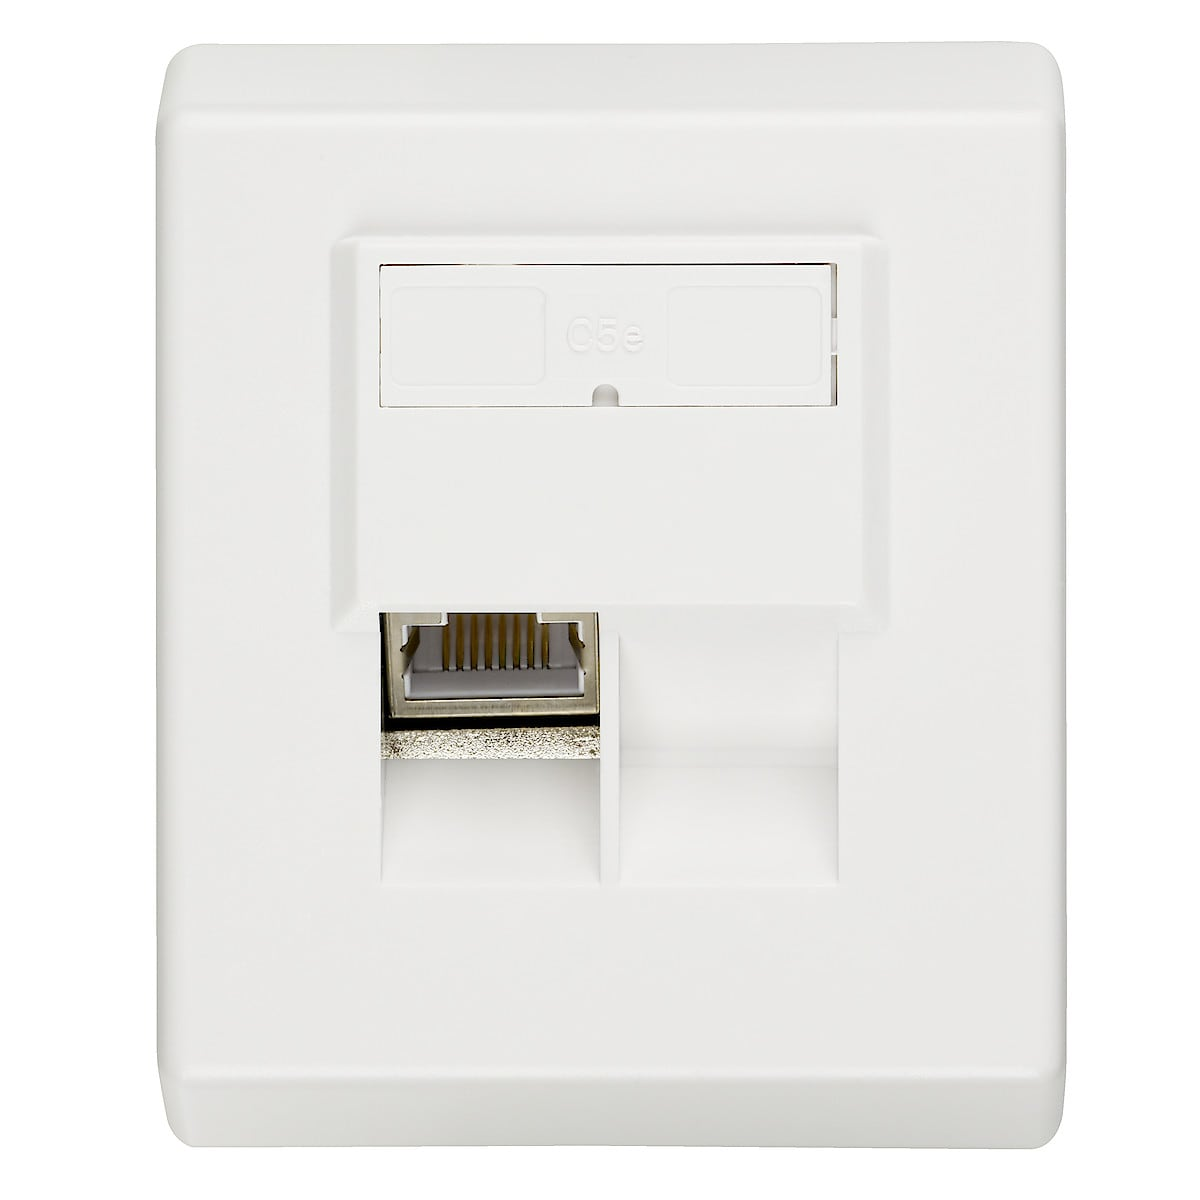 CAT 6 Network Outlet